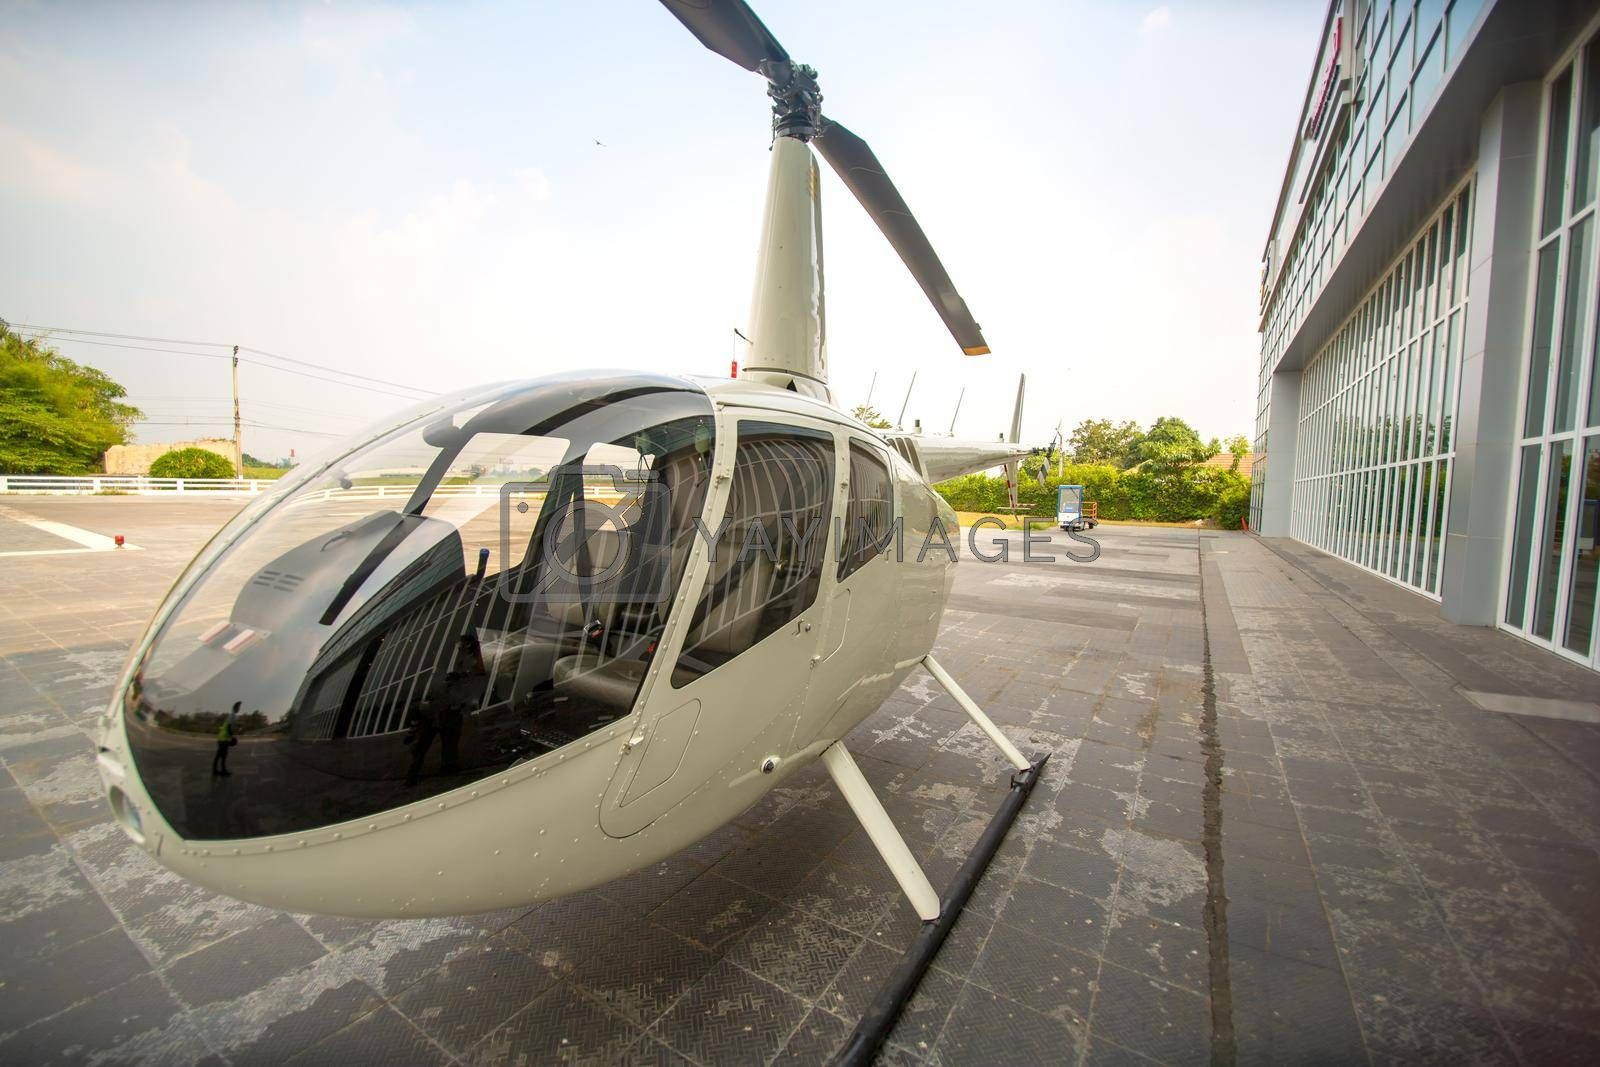 private commercial Helicopter parking by airport terminal